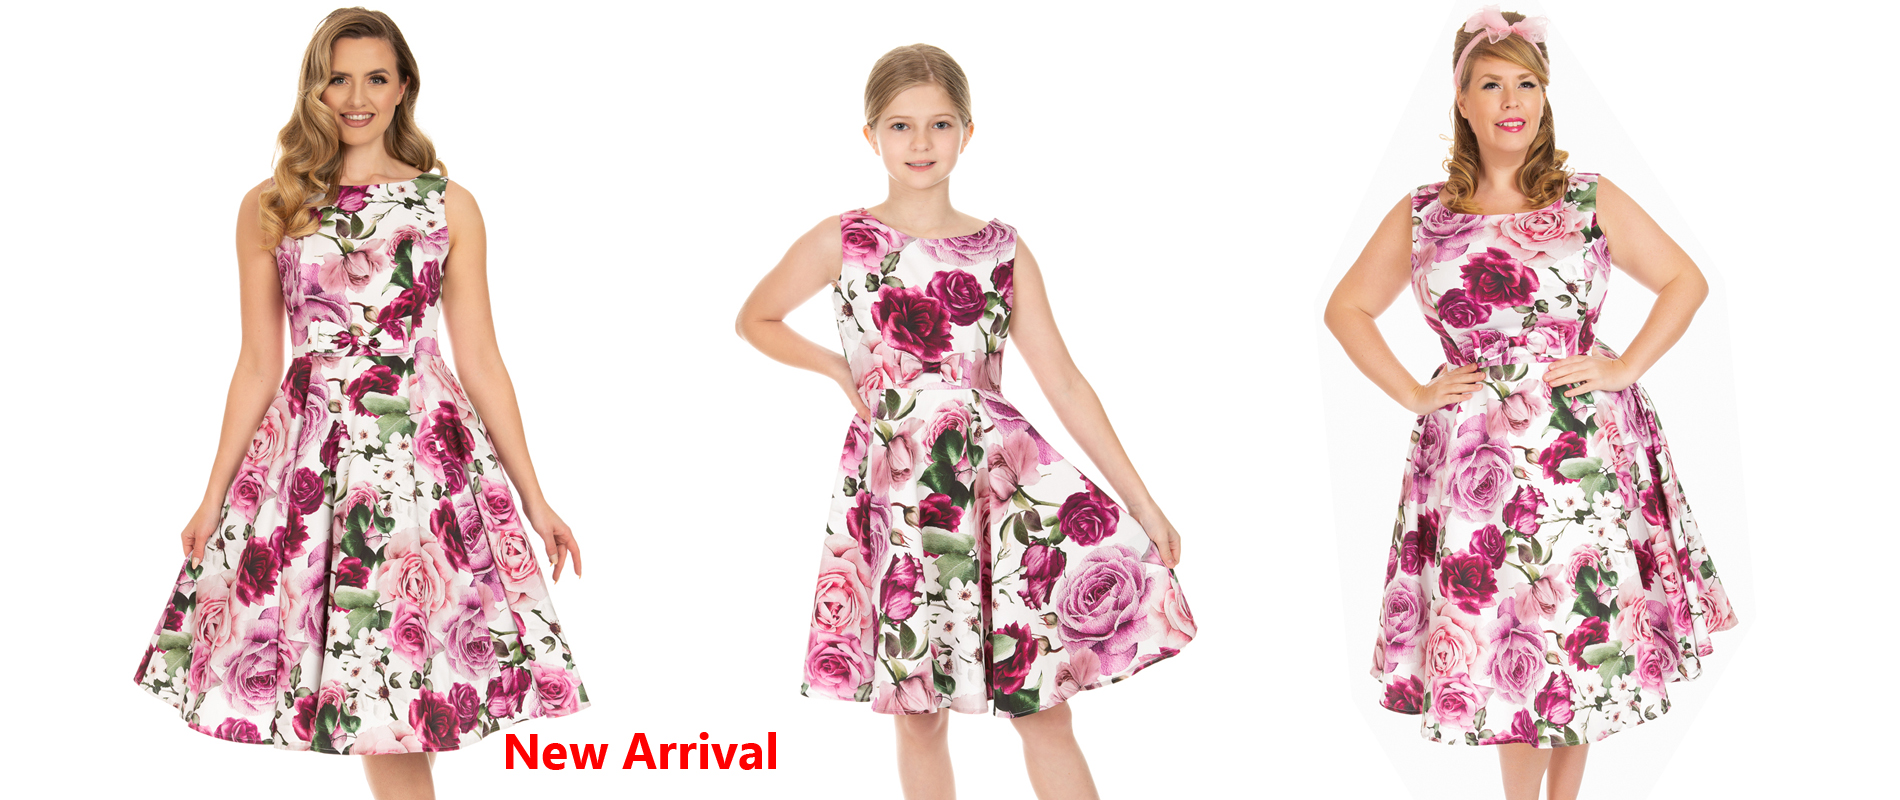 New Arrival 285